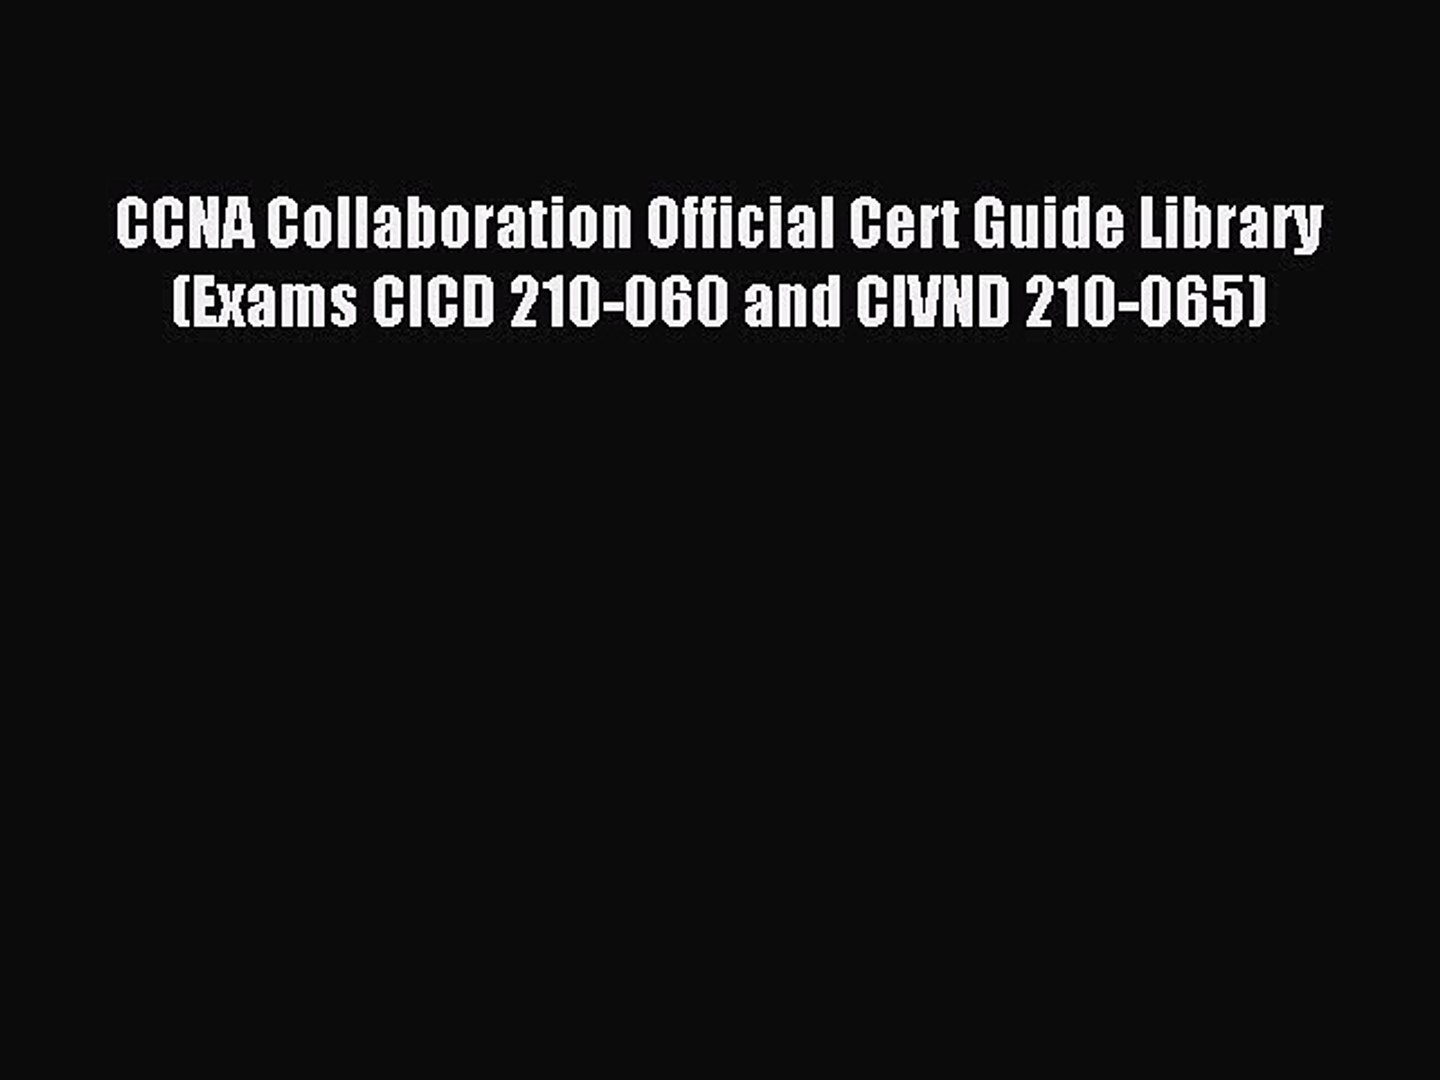 Read CCNA Collaboration Official Cert Guide Library (Exams CICD 210-060 and CIVND 210-065)